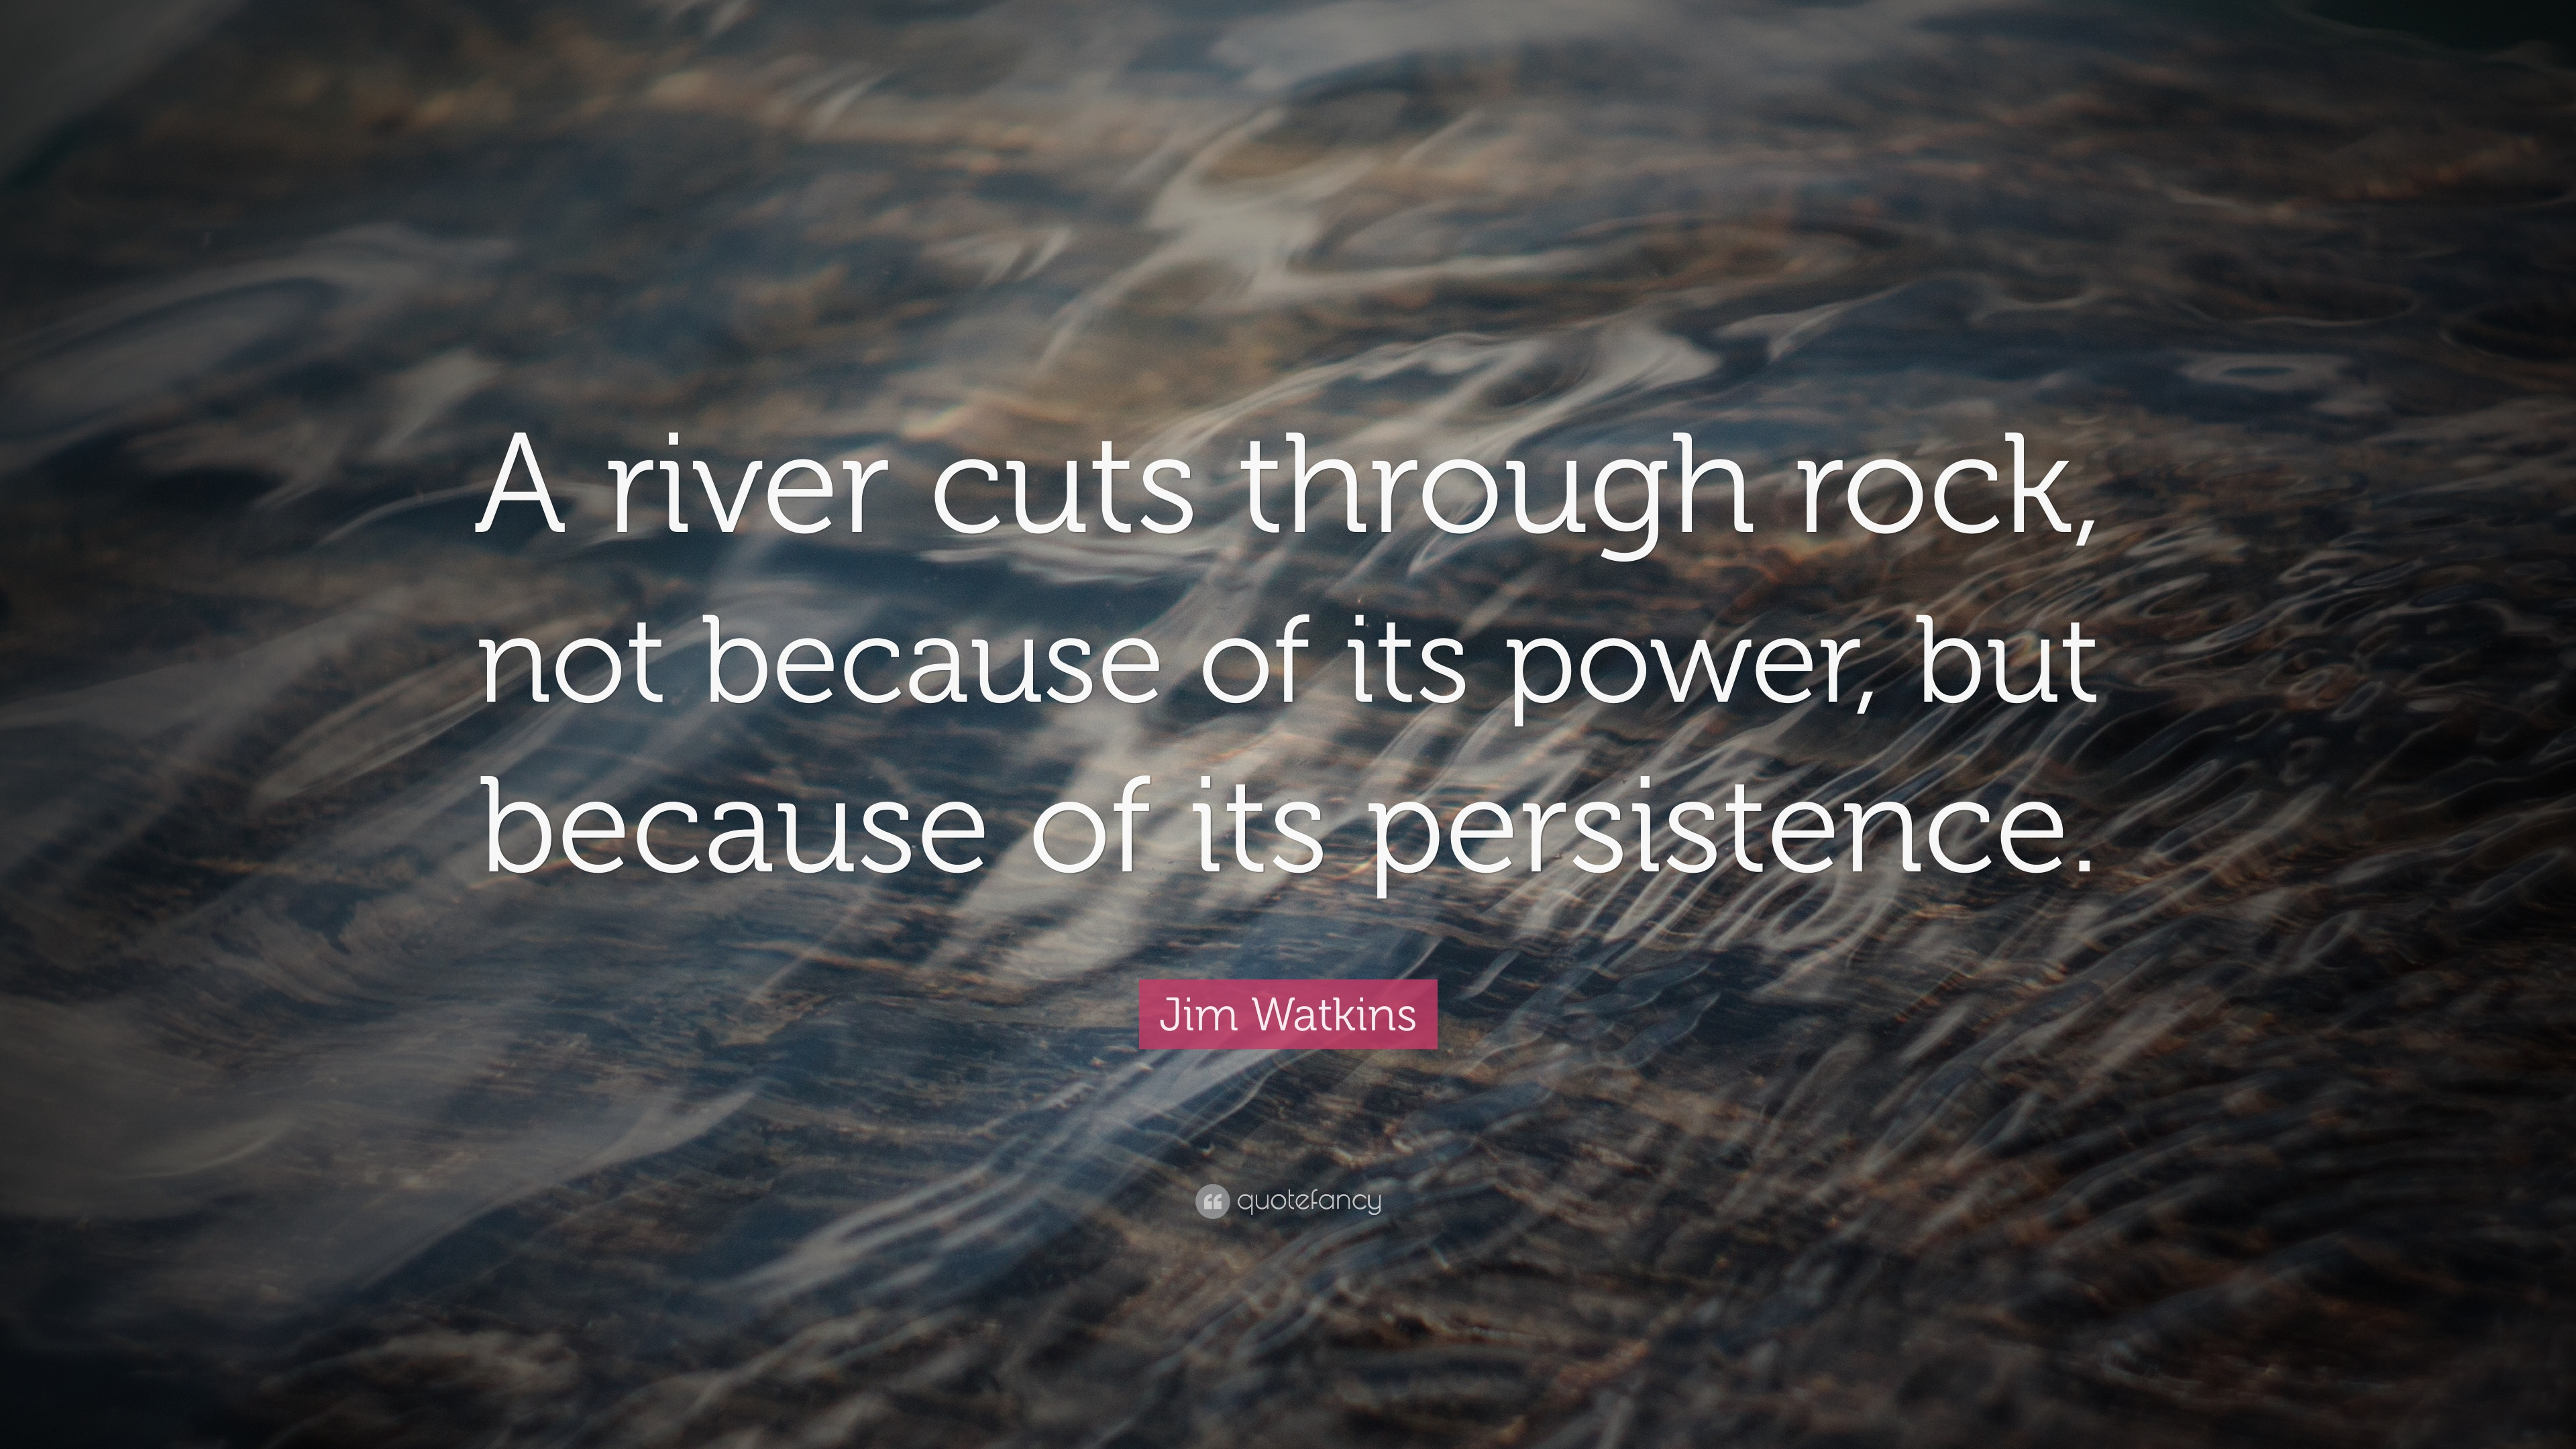 Persistence Motivational Quotes: Persistence Quotes (50 Wallpapers)